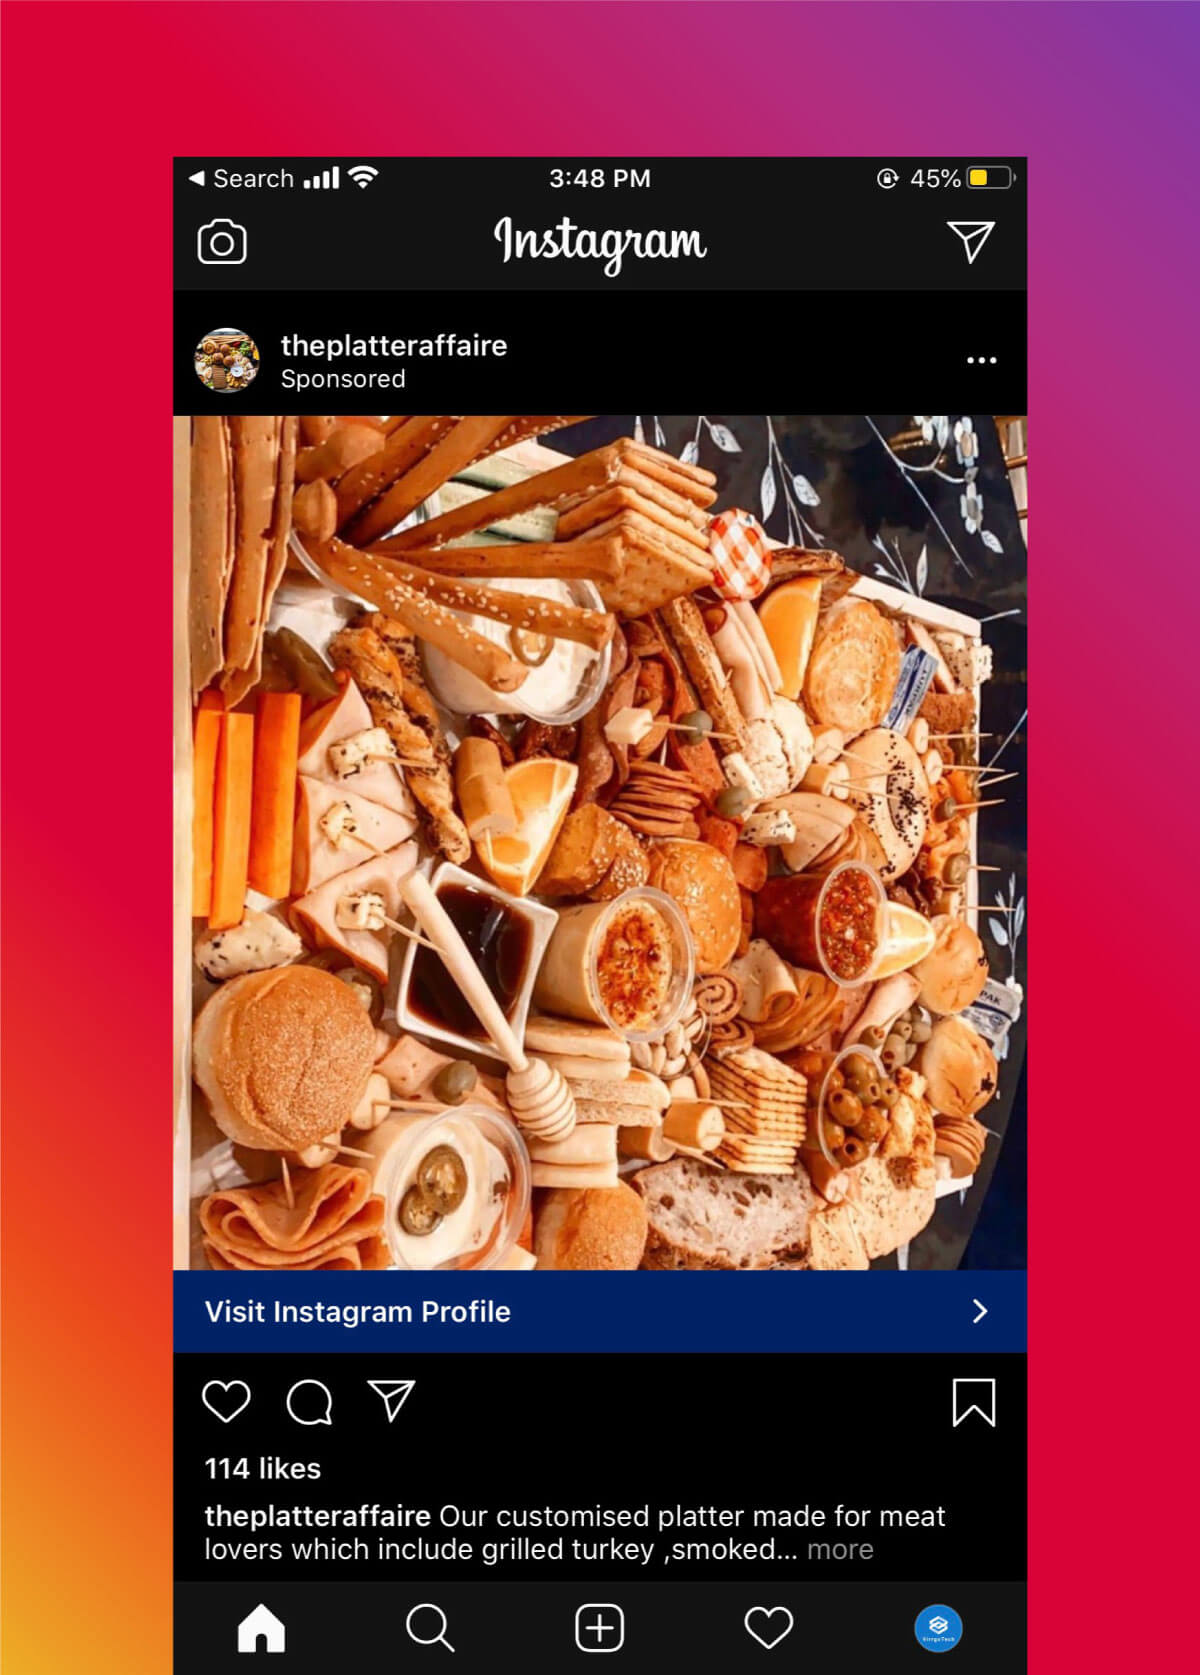 Instagram Marketing Strategy - Paid Ads